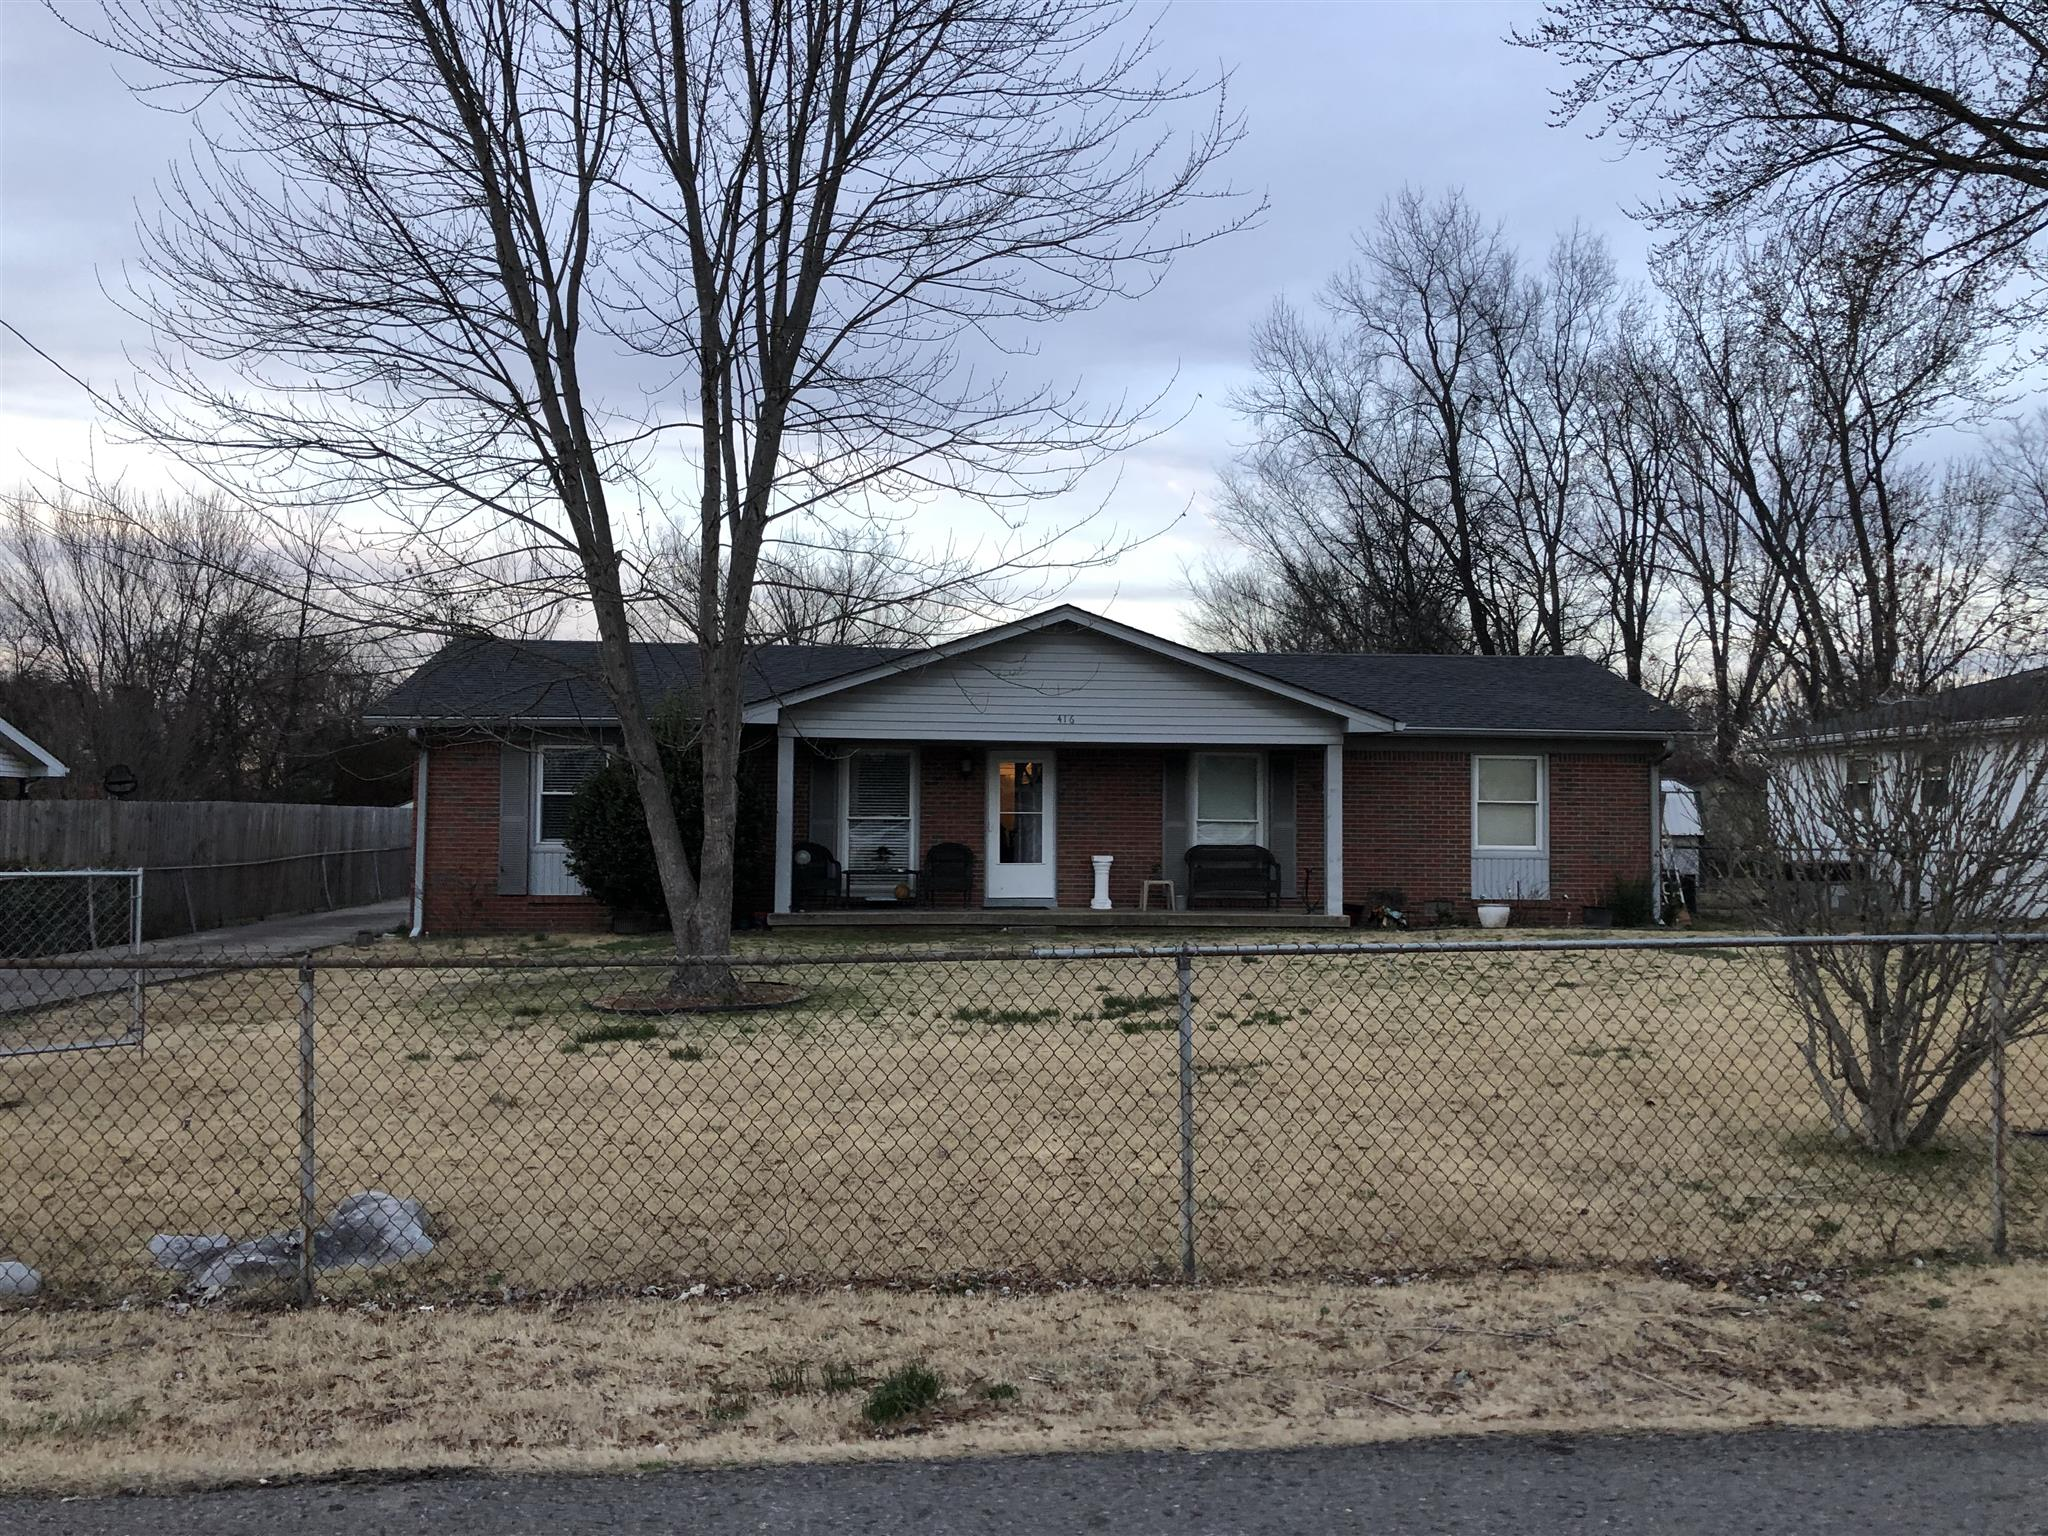 416 Rodney St, Gallatin in Sumner County County, TN 37066 Home for Sale